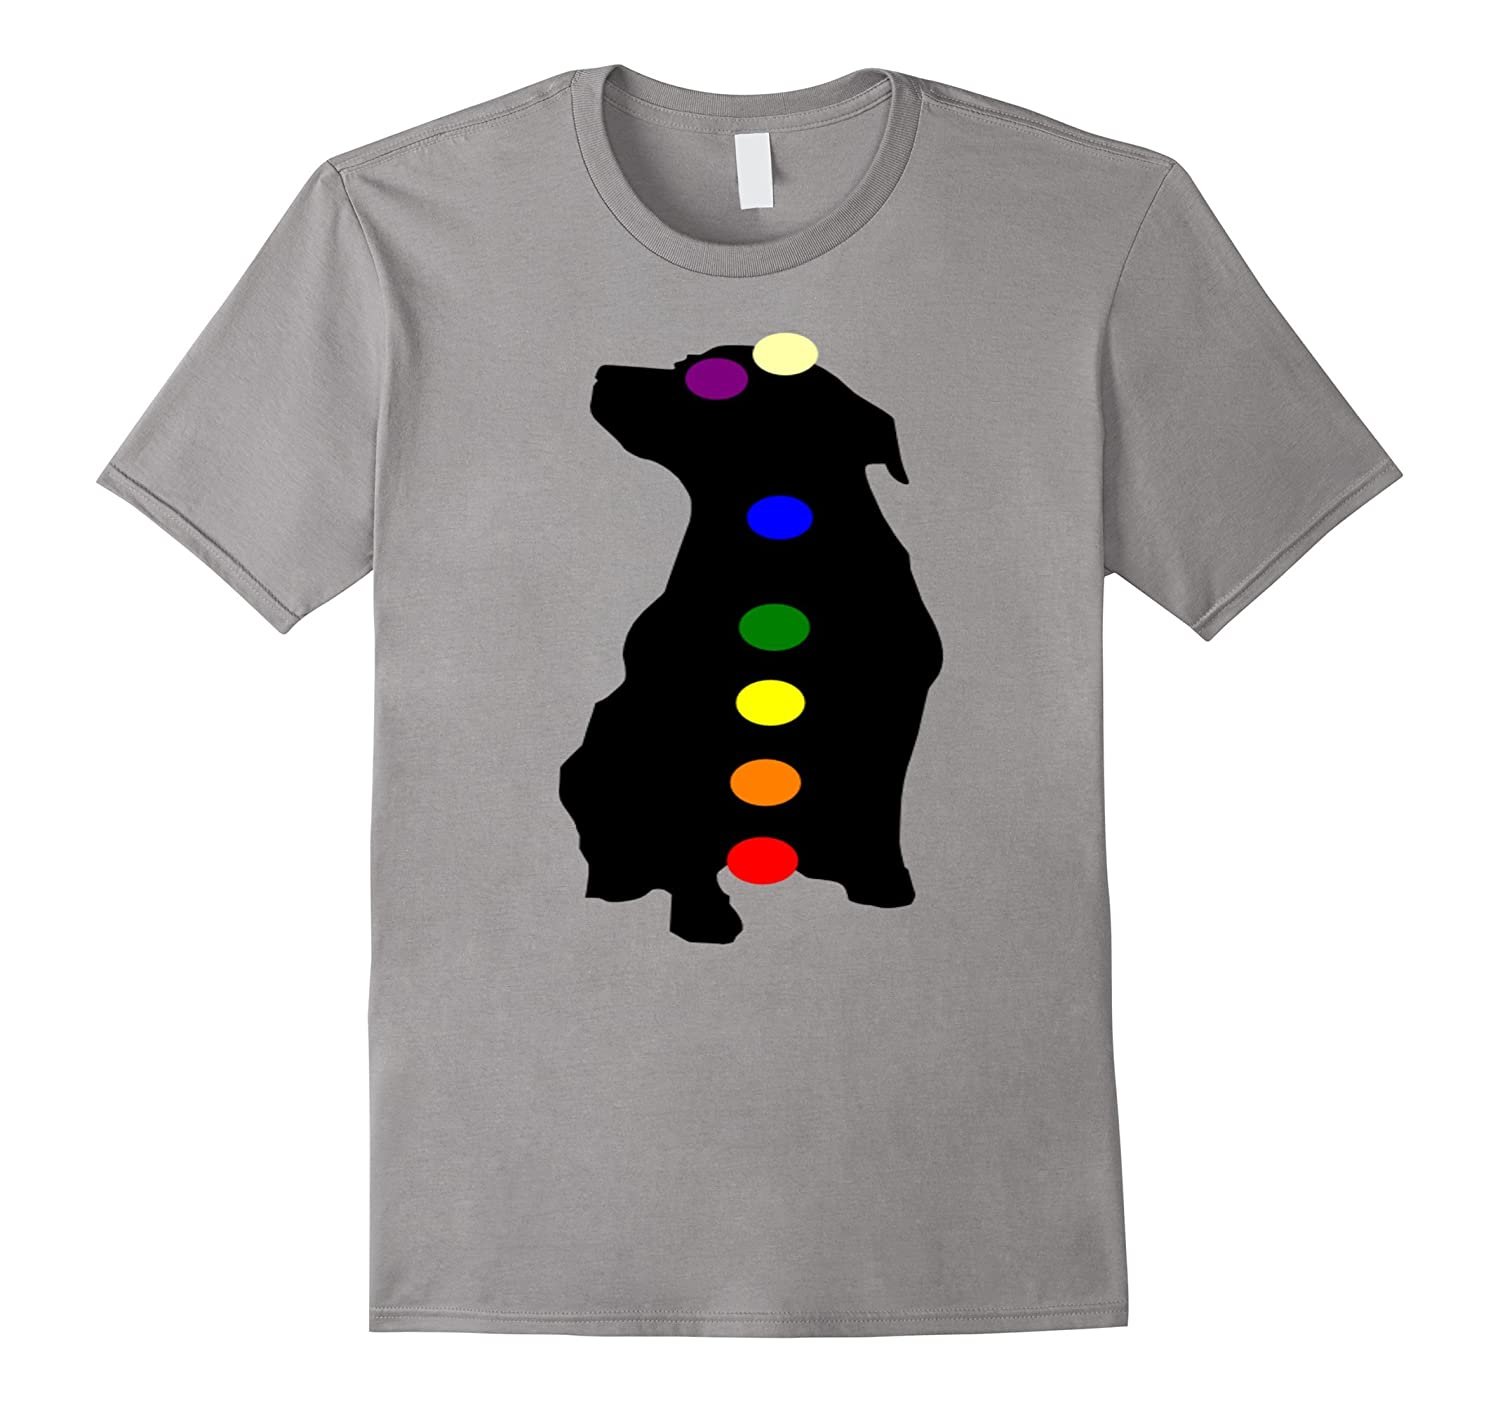 7 Chakras Dog T-Shirt Hindu Buddhist Buddhism Yoga T-Shirt-Art